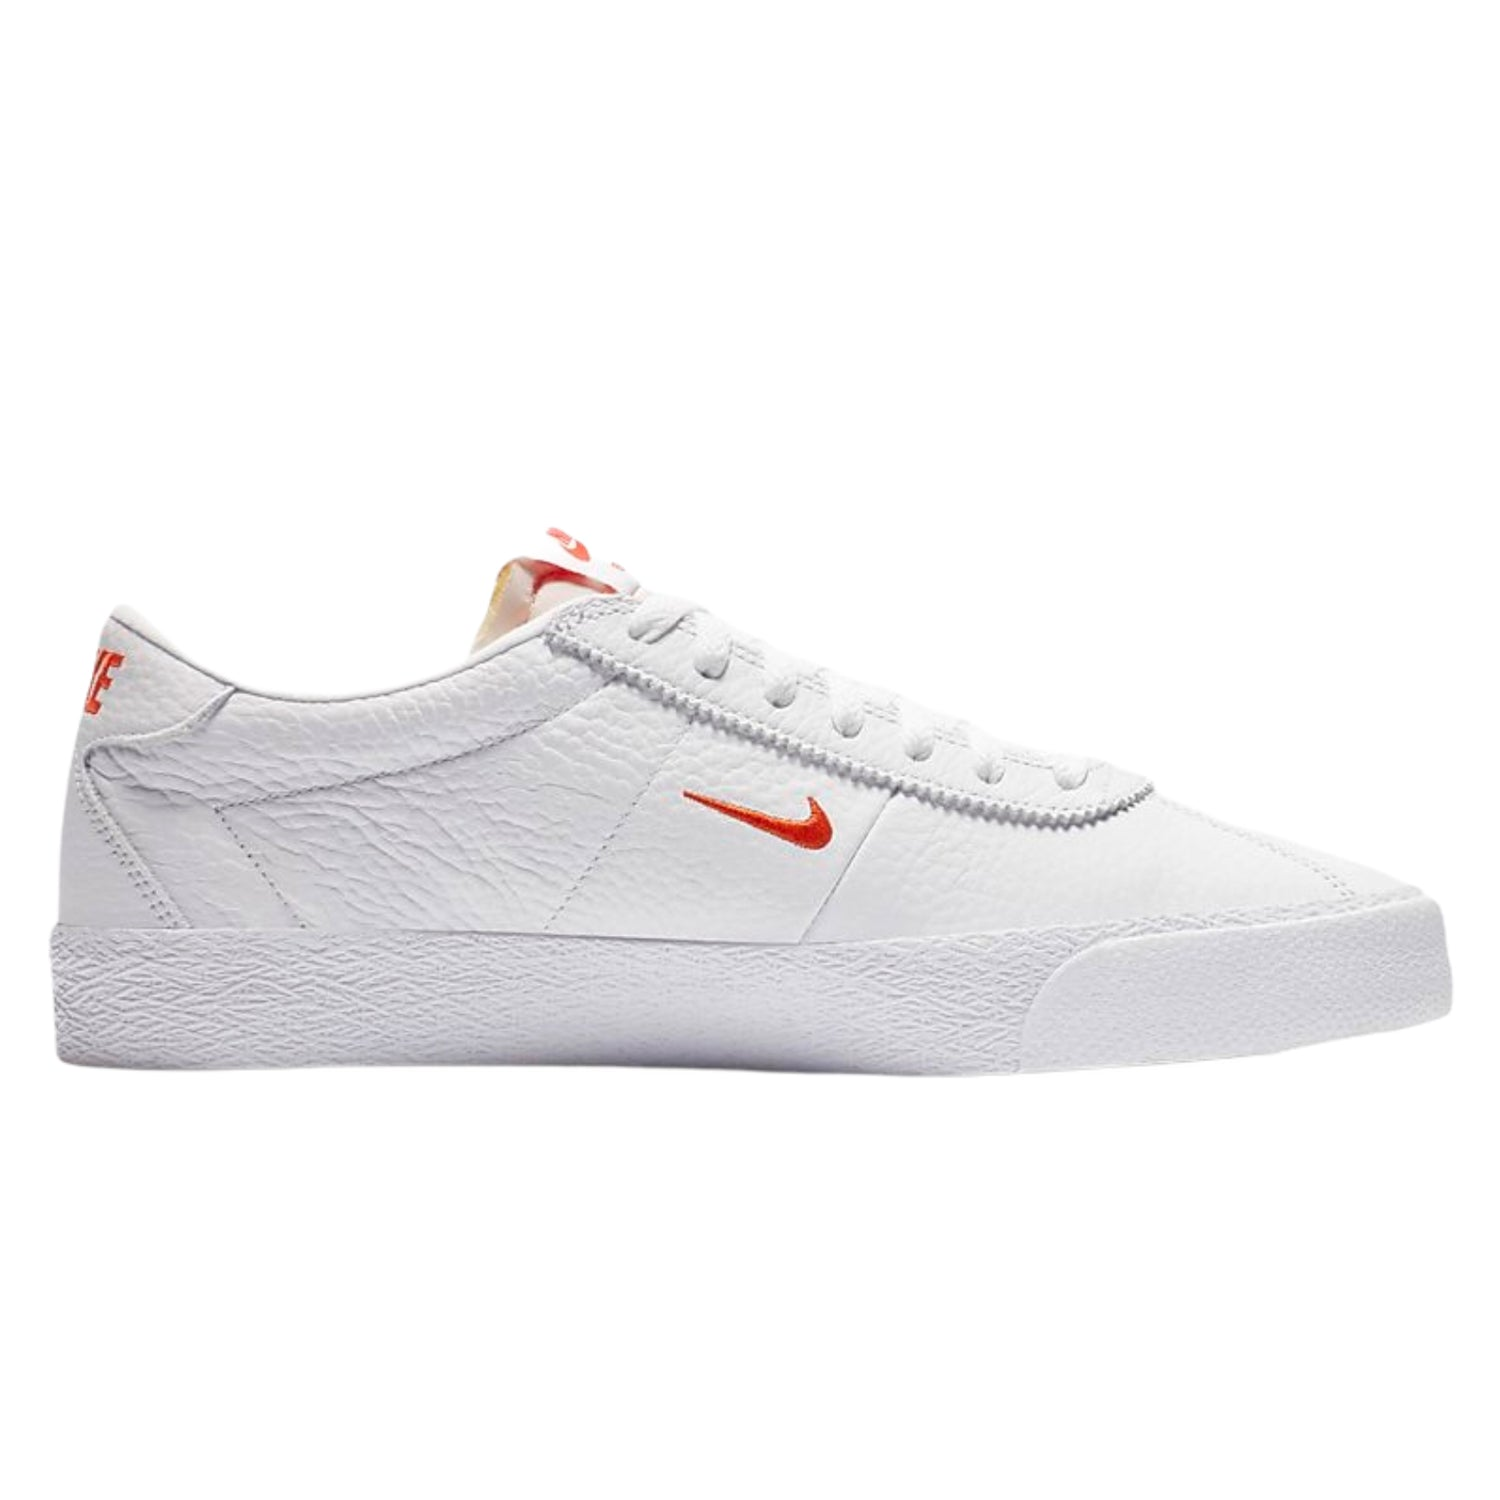 Nike SB Zoom Bruin White/Gum/Team Orange